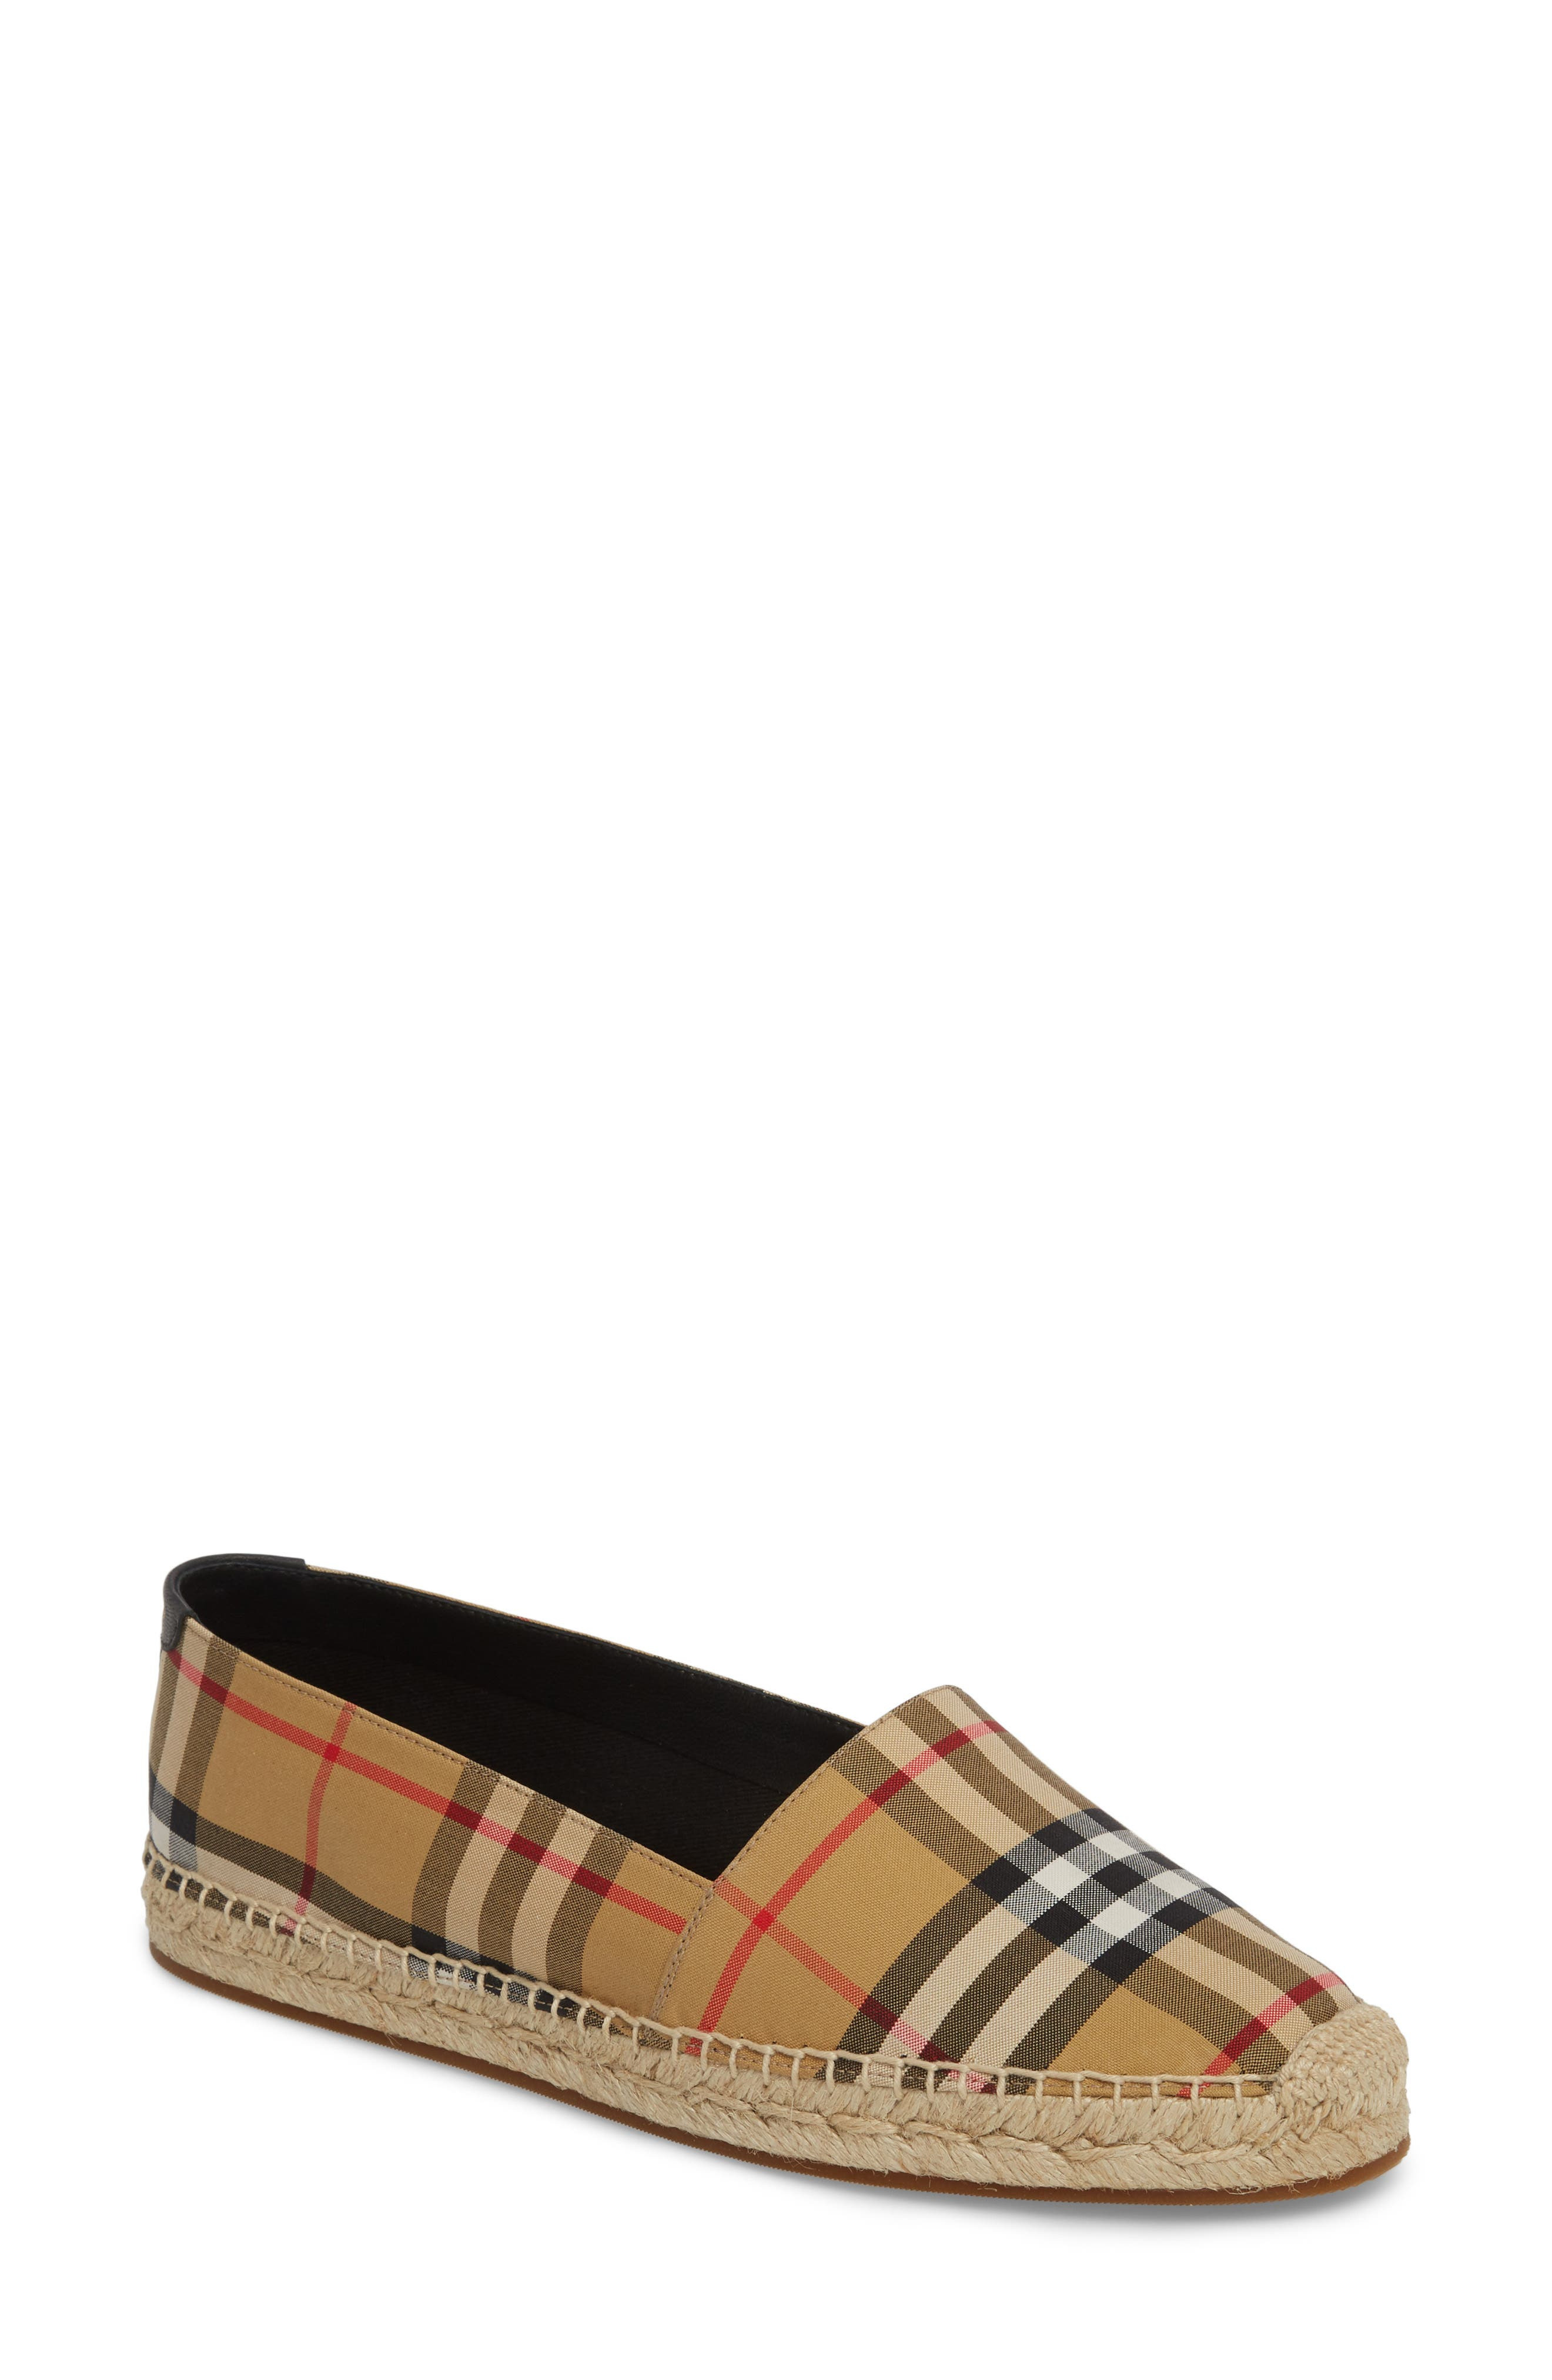 Hodgeson Check Espadrille Flat,                             Main thumbnail 1, color,                             251